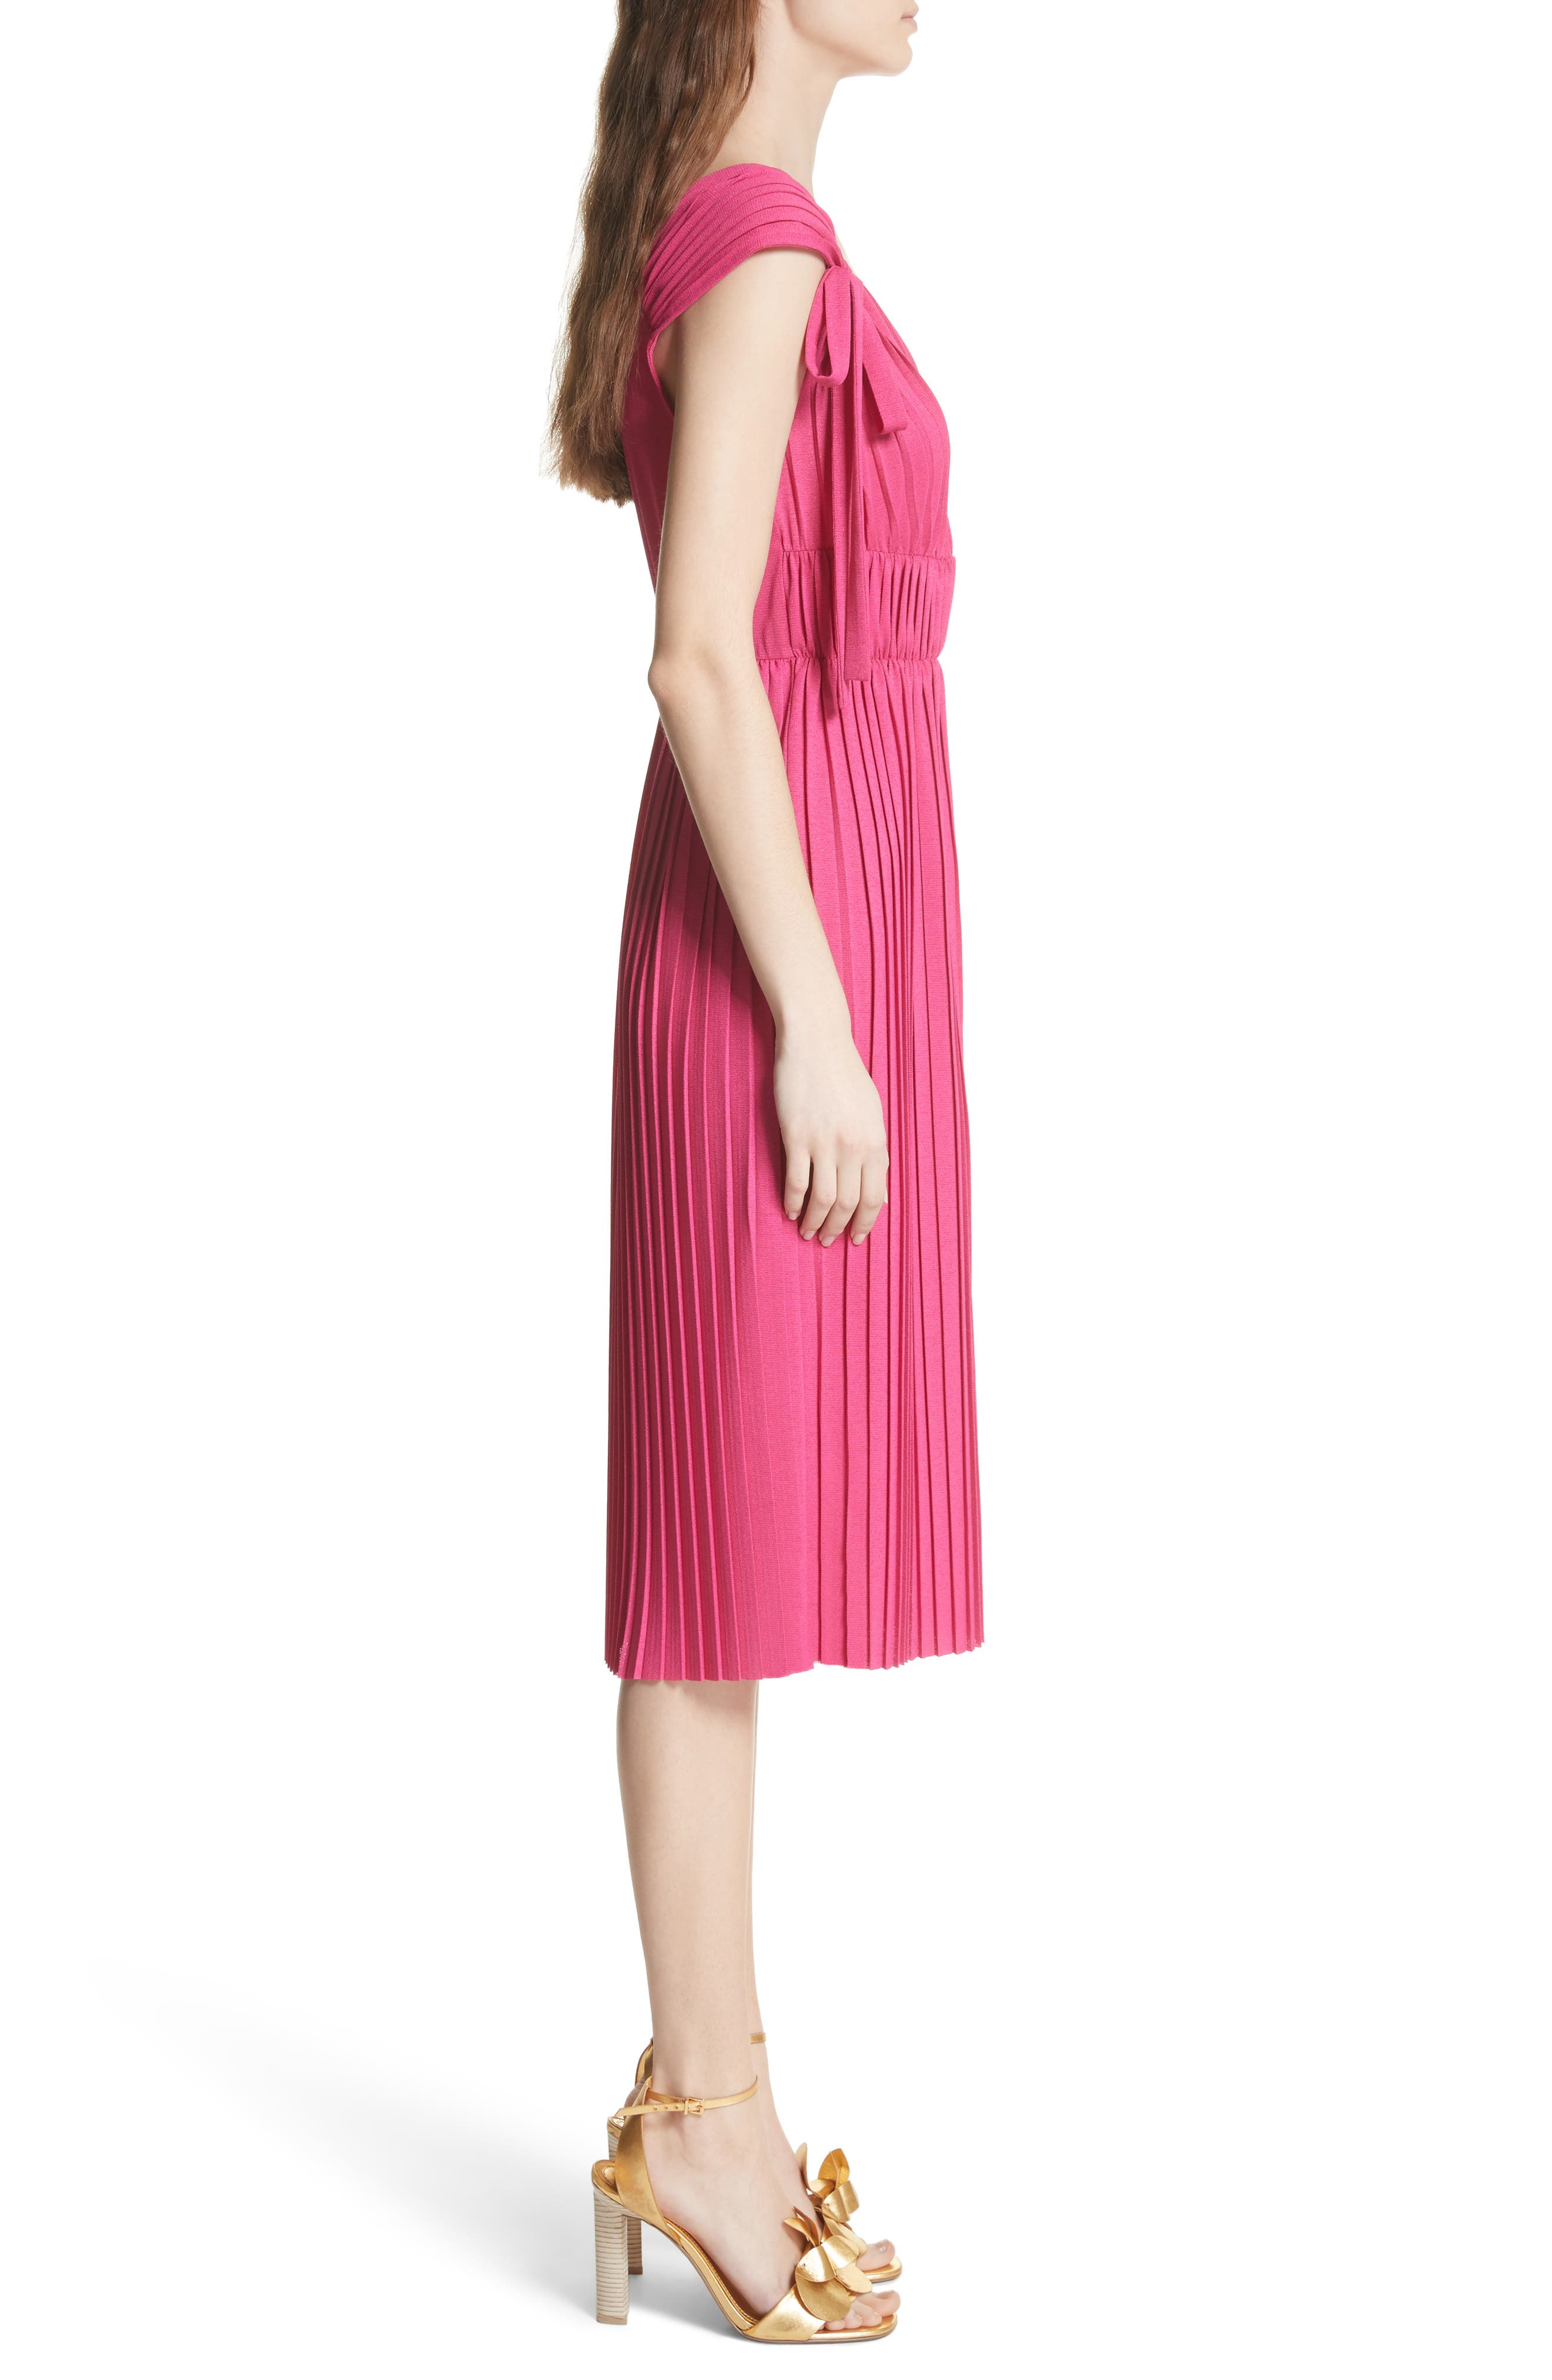 TRACY REESE,                             Grecian Pleat Dress,                             Alternate thumbnail 3, color,                             664